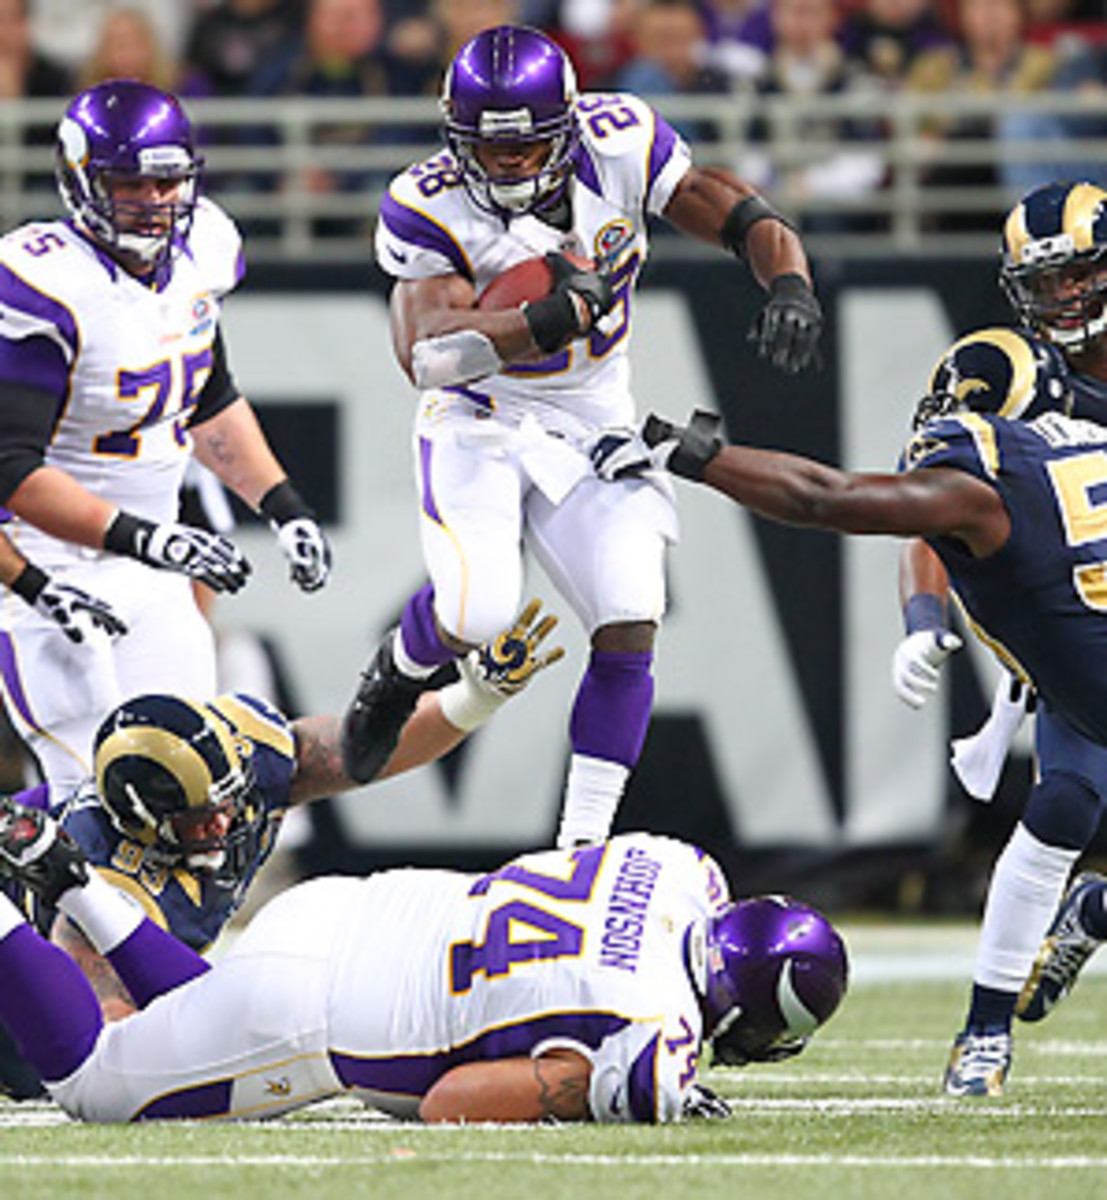 Adrian Peterson is averaging a remarkable 6.3 yards per carry this season. (Dilip Vishwanat/Getty Images)